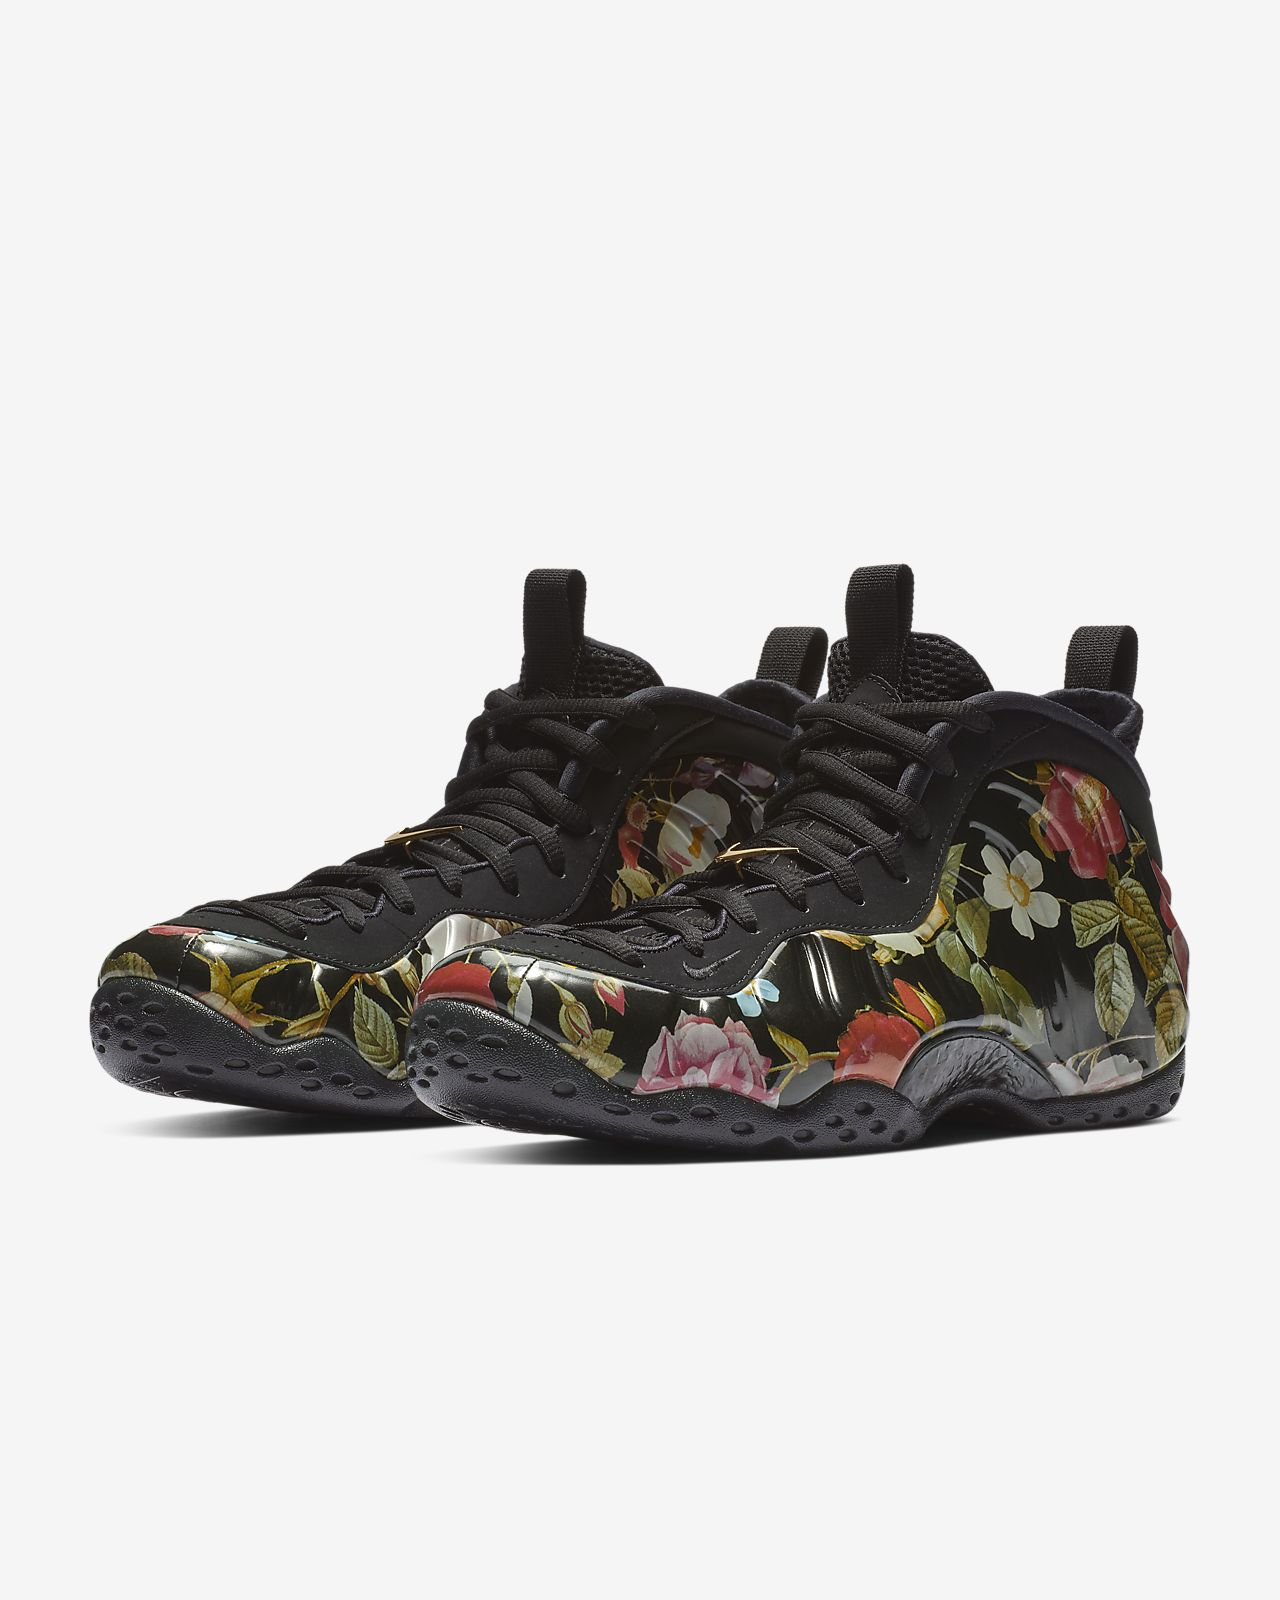 cheaper 4c500 bff74 ... Nike Air Foamposite One Men s Shoe